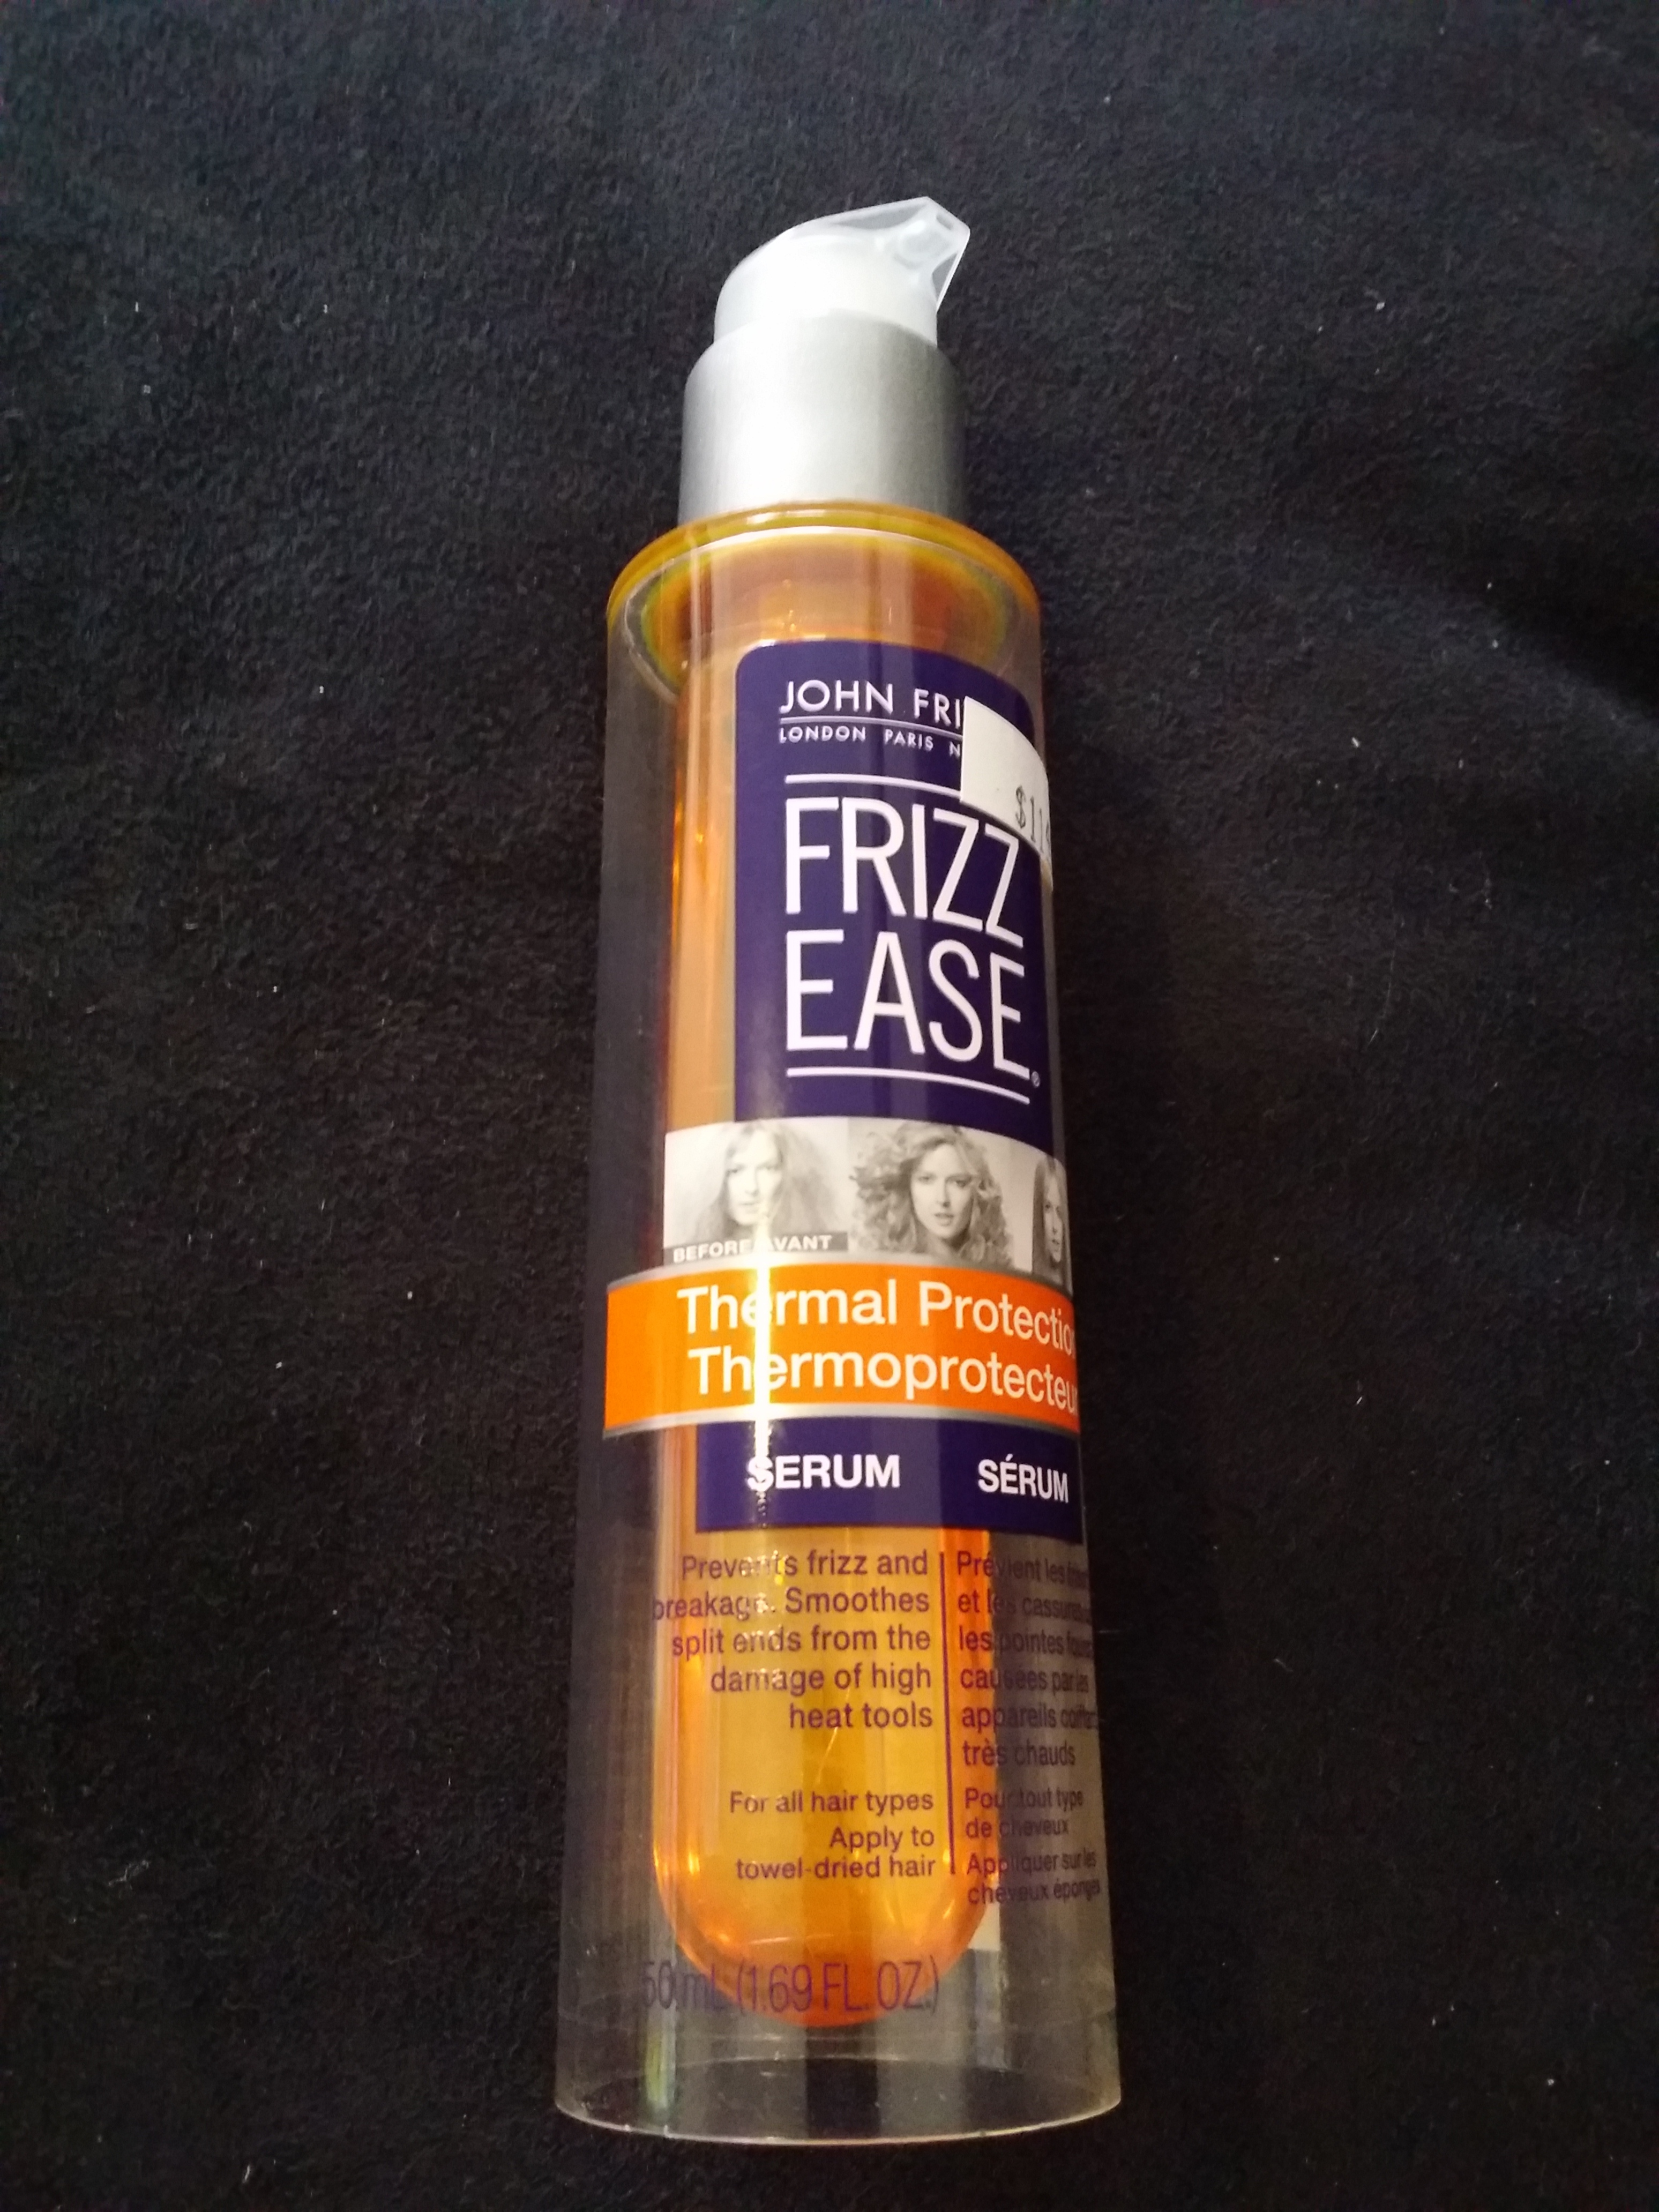 John Frieda Frizz Ease Thermal Protection Serum Reviews In Hair Care ChickAdvisor